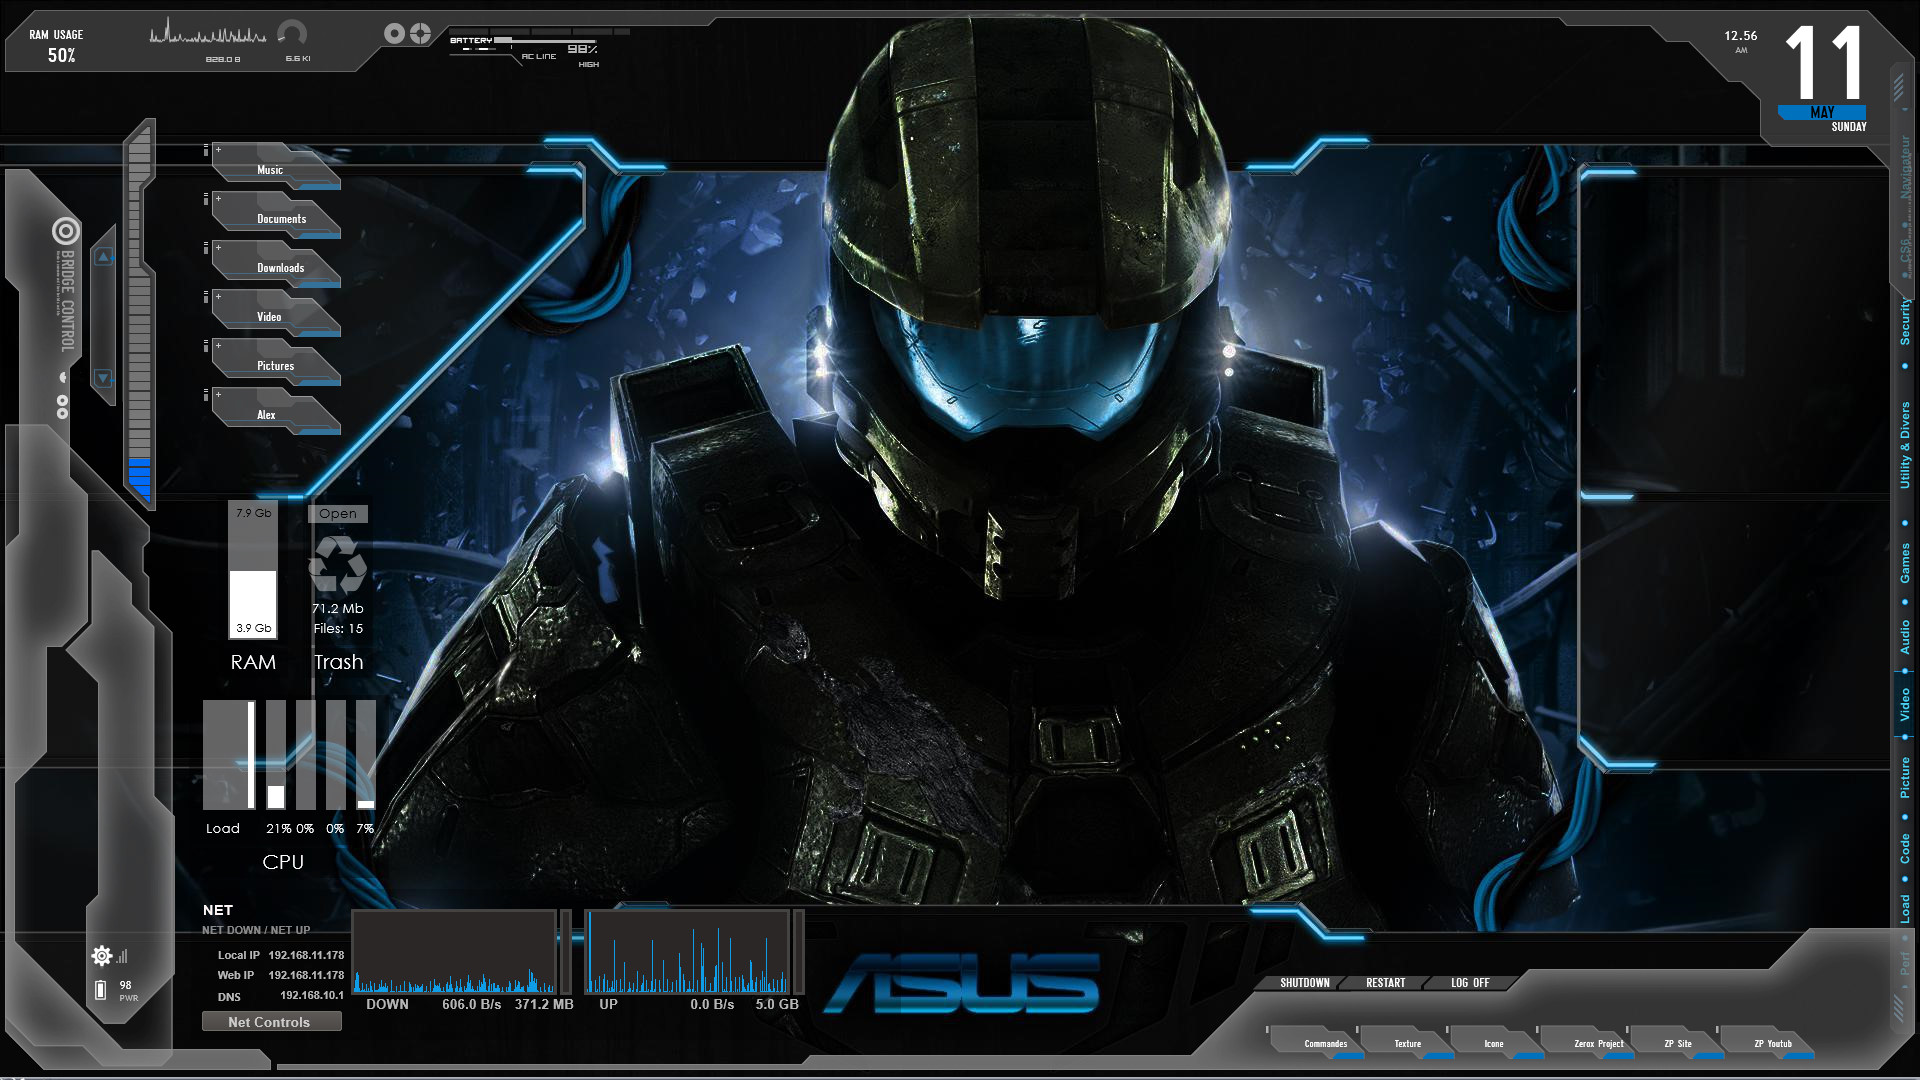 blue-space-future-tech-rainmeter-zerox-project-by-zeroxproject-dhw3dz-1920%C3%971080-wallpaper-wp3603555